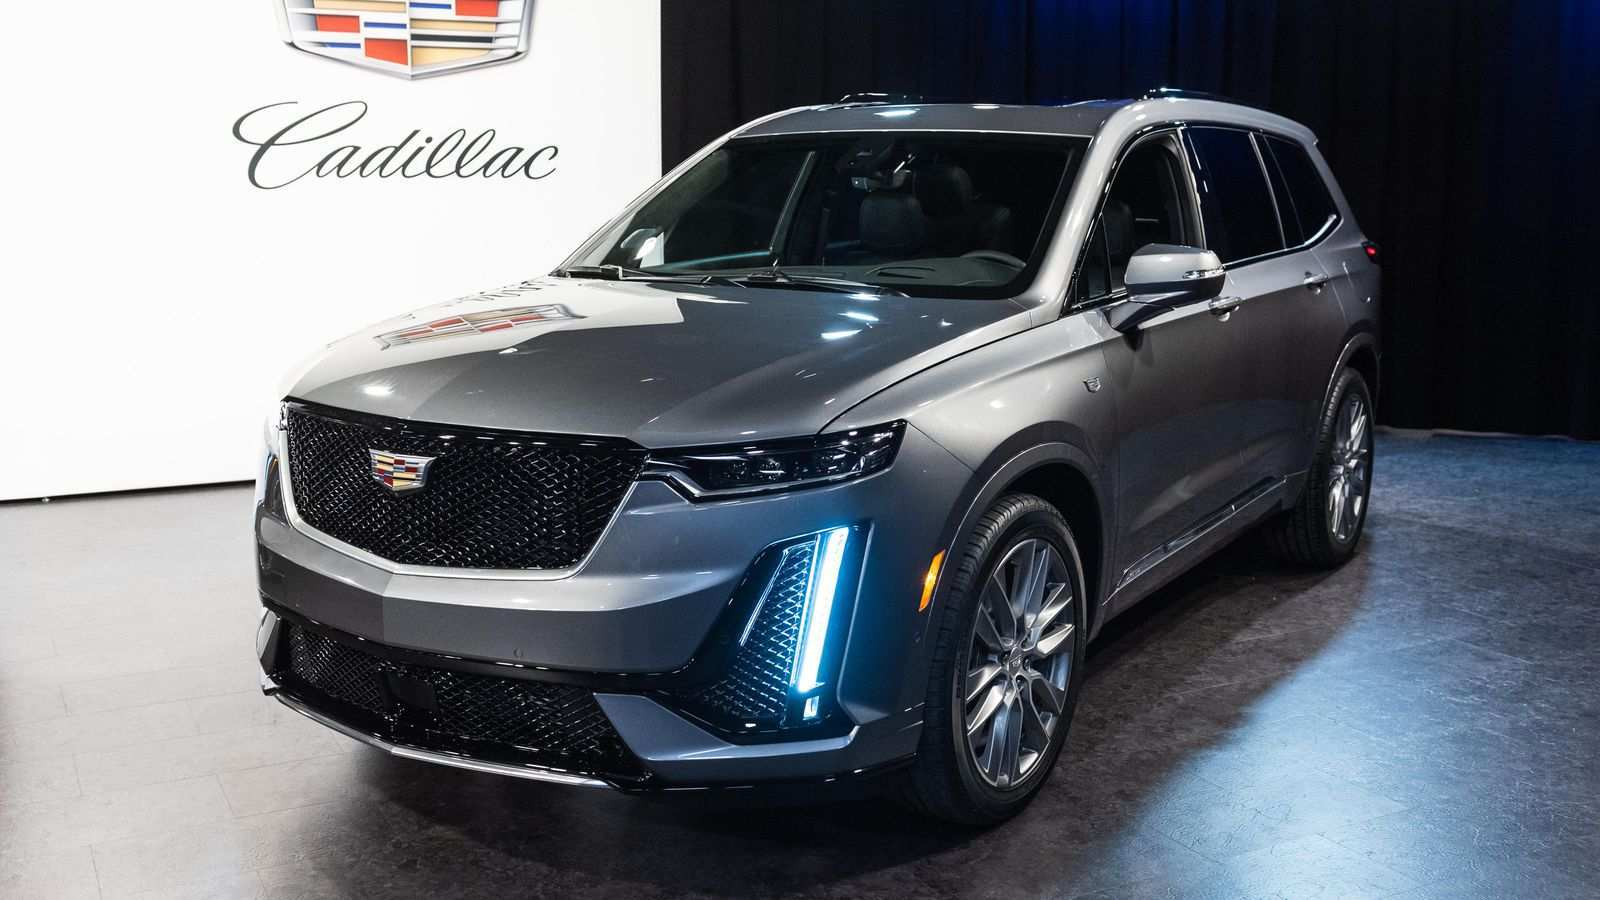 46 New 2020 Cadillac Escalade Release Date